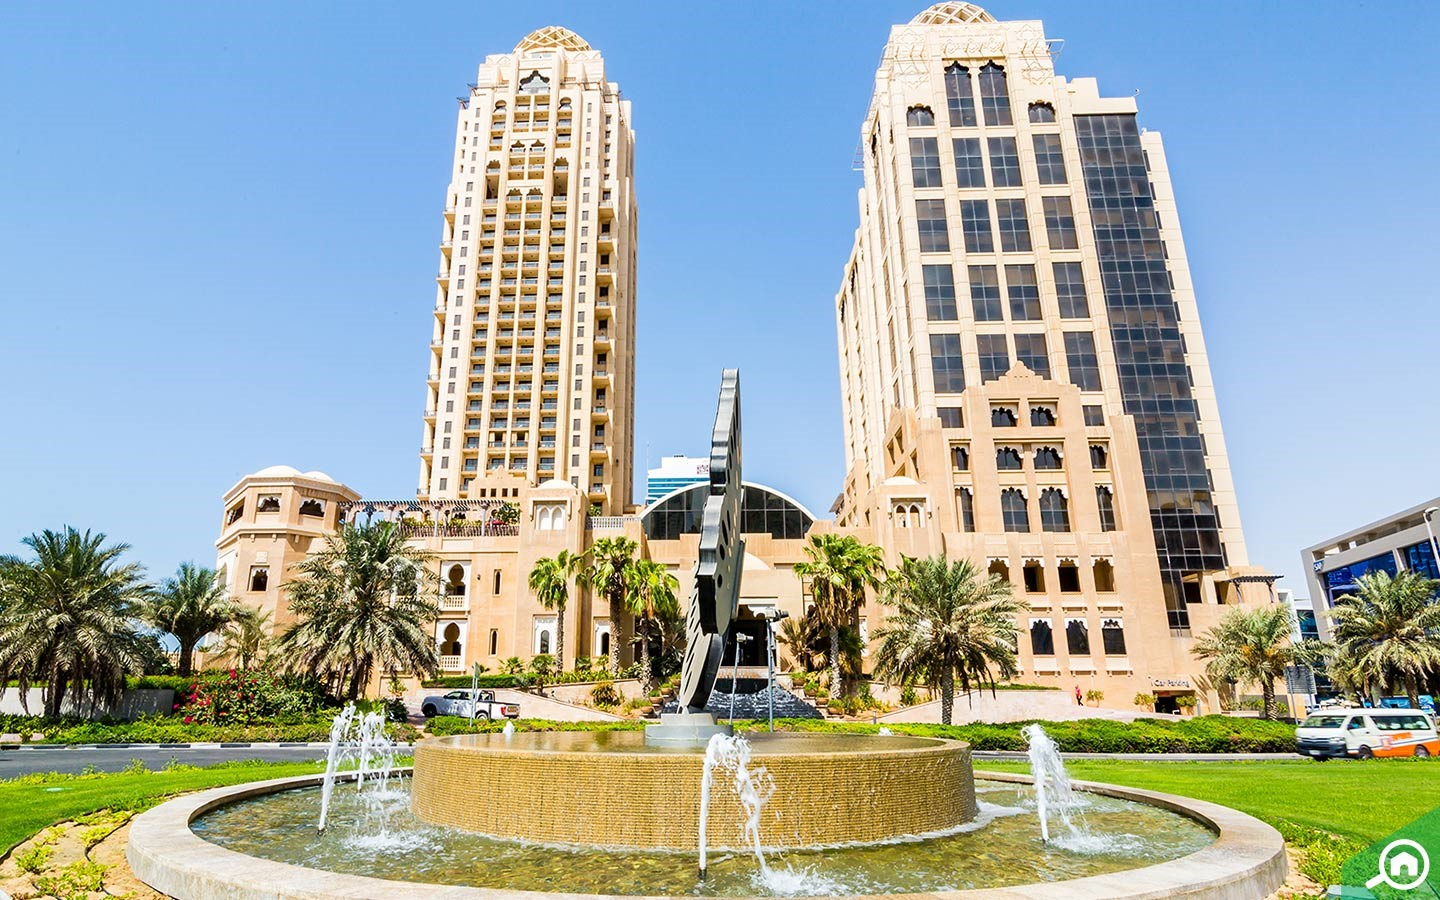 Foreign investors get to operate businesses in Dubai Media City, a tax-free zone